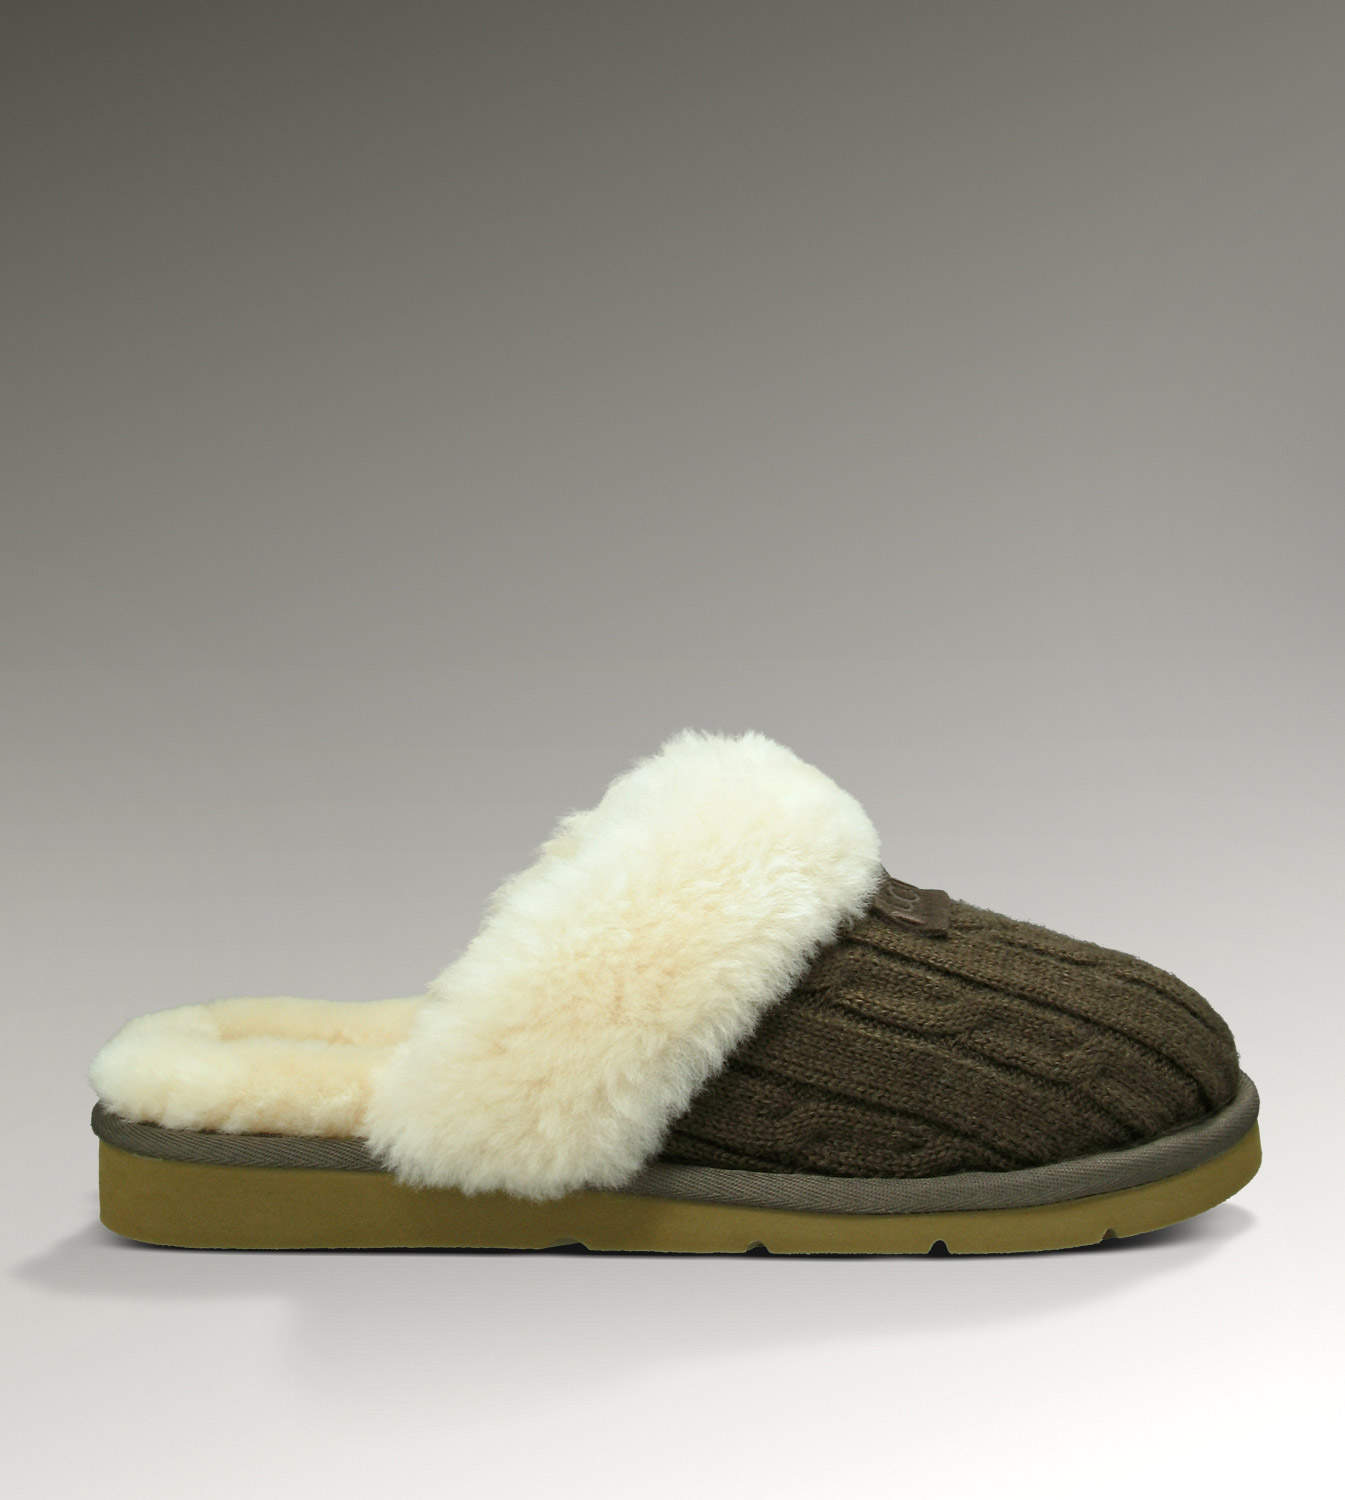 UGG Cozy Knit 1865 Chocolate Slippers